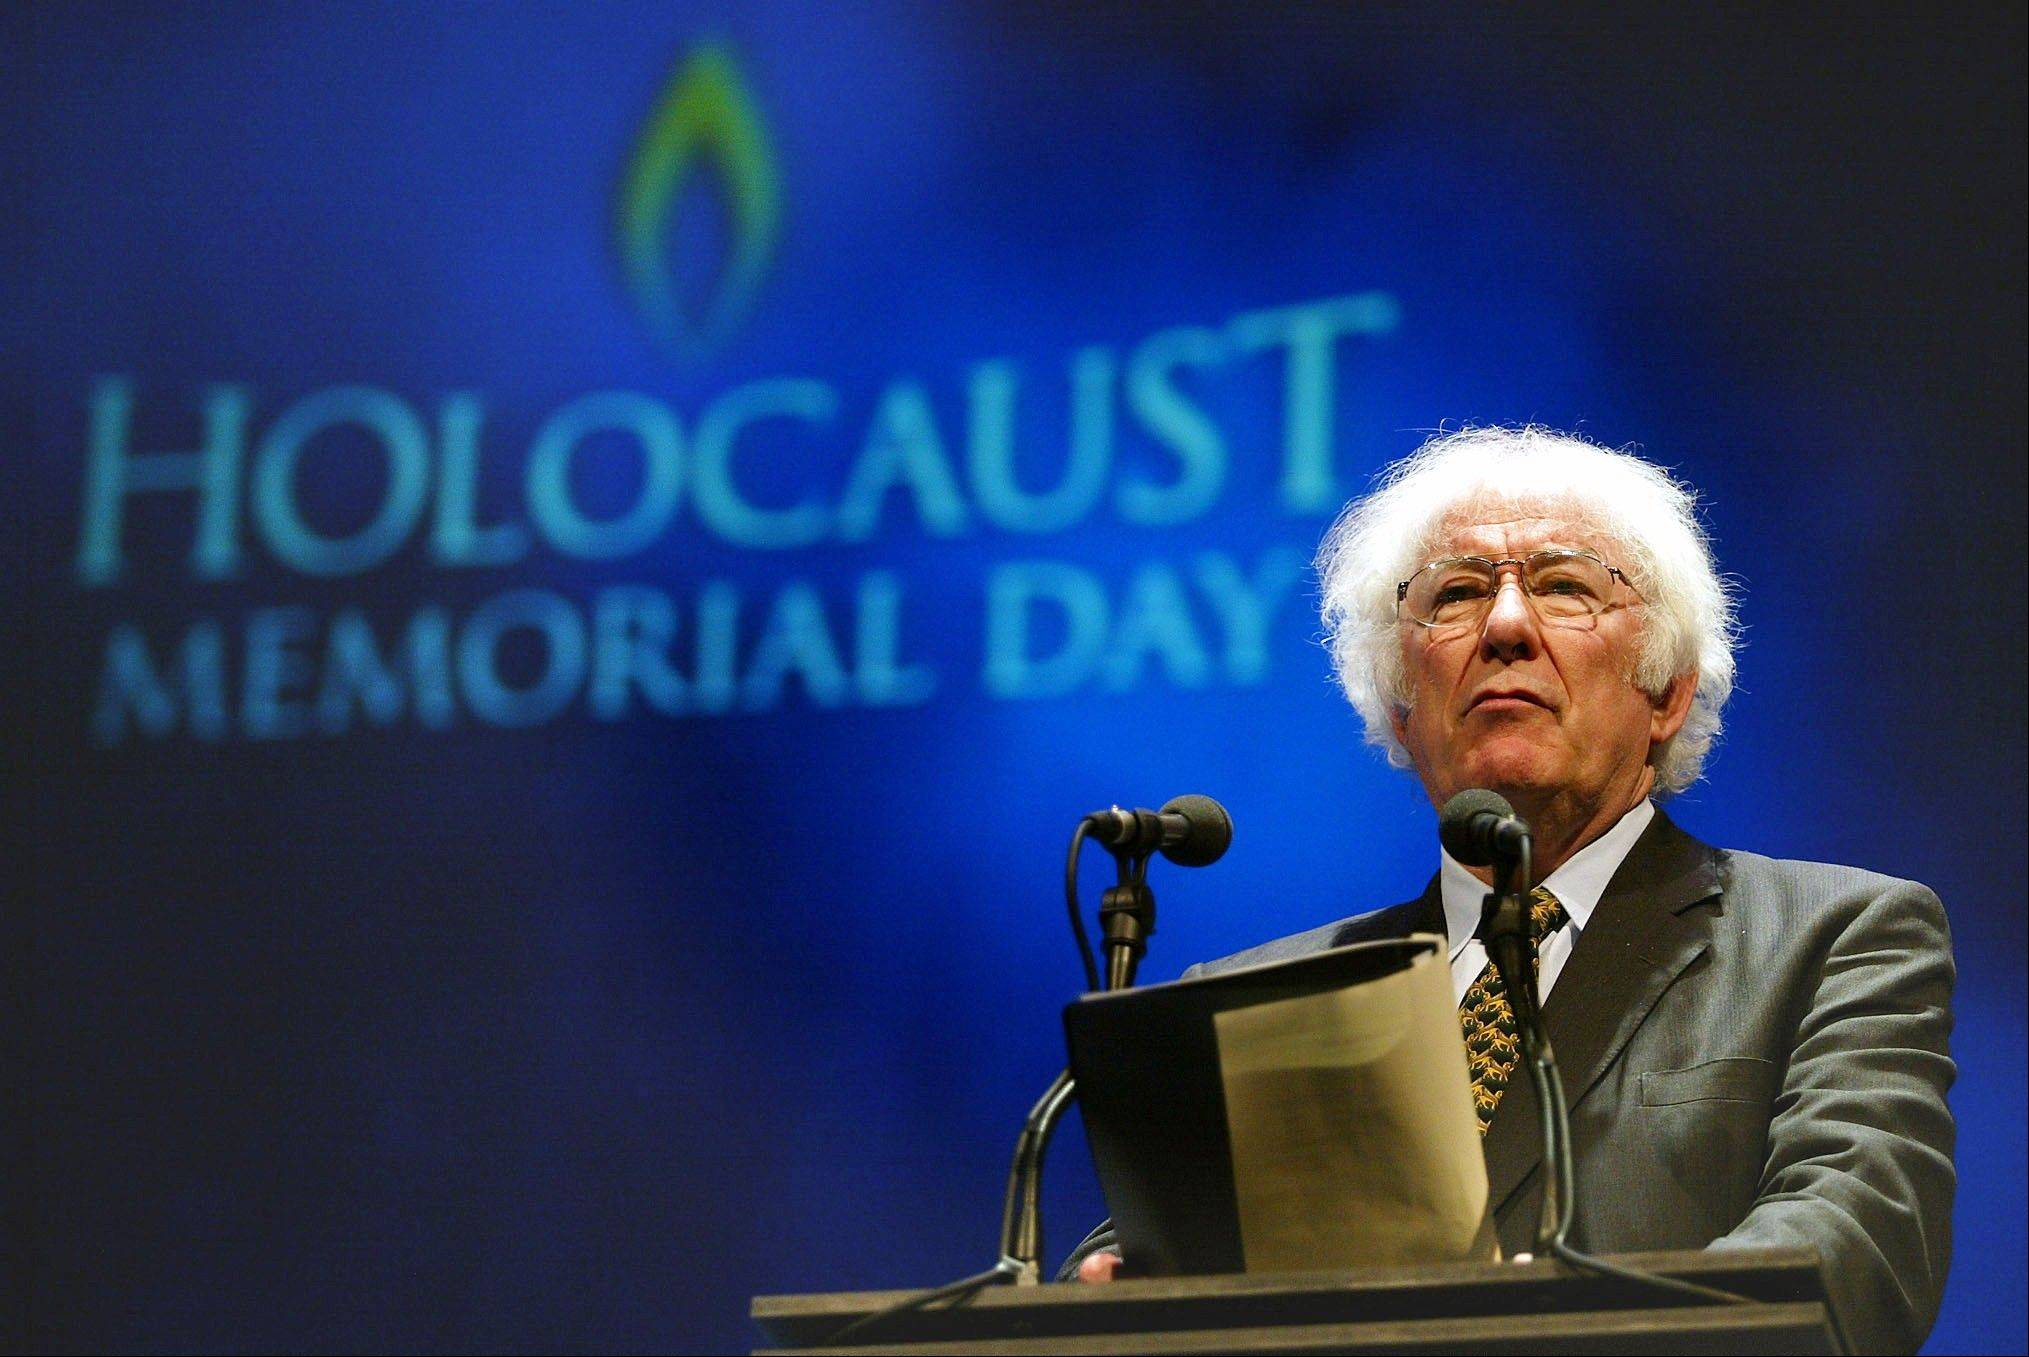 A Tuesday, Jan. 27, 2004 photo from files showing former Nobel Prize winning poet Seamus Heaney speaking during a rehearsal for the Northern Irish national Holocaust commemoration at the Waterfront Hall, Belfast, Northern Ireland. Seamus Heaney, Ireland�s foremost poet who won the Nobel literature prize in 1995, has died after a half-century exploring the wild beauty of Ireland and the political torment within the nation�s soul.